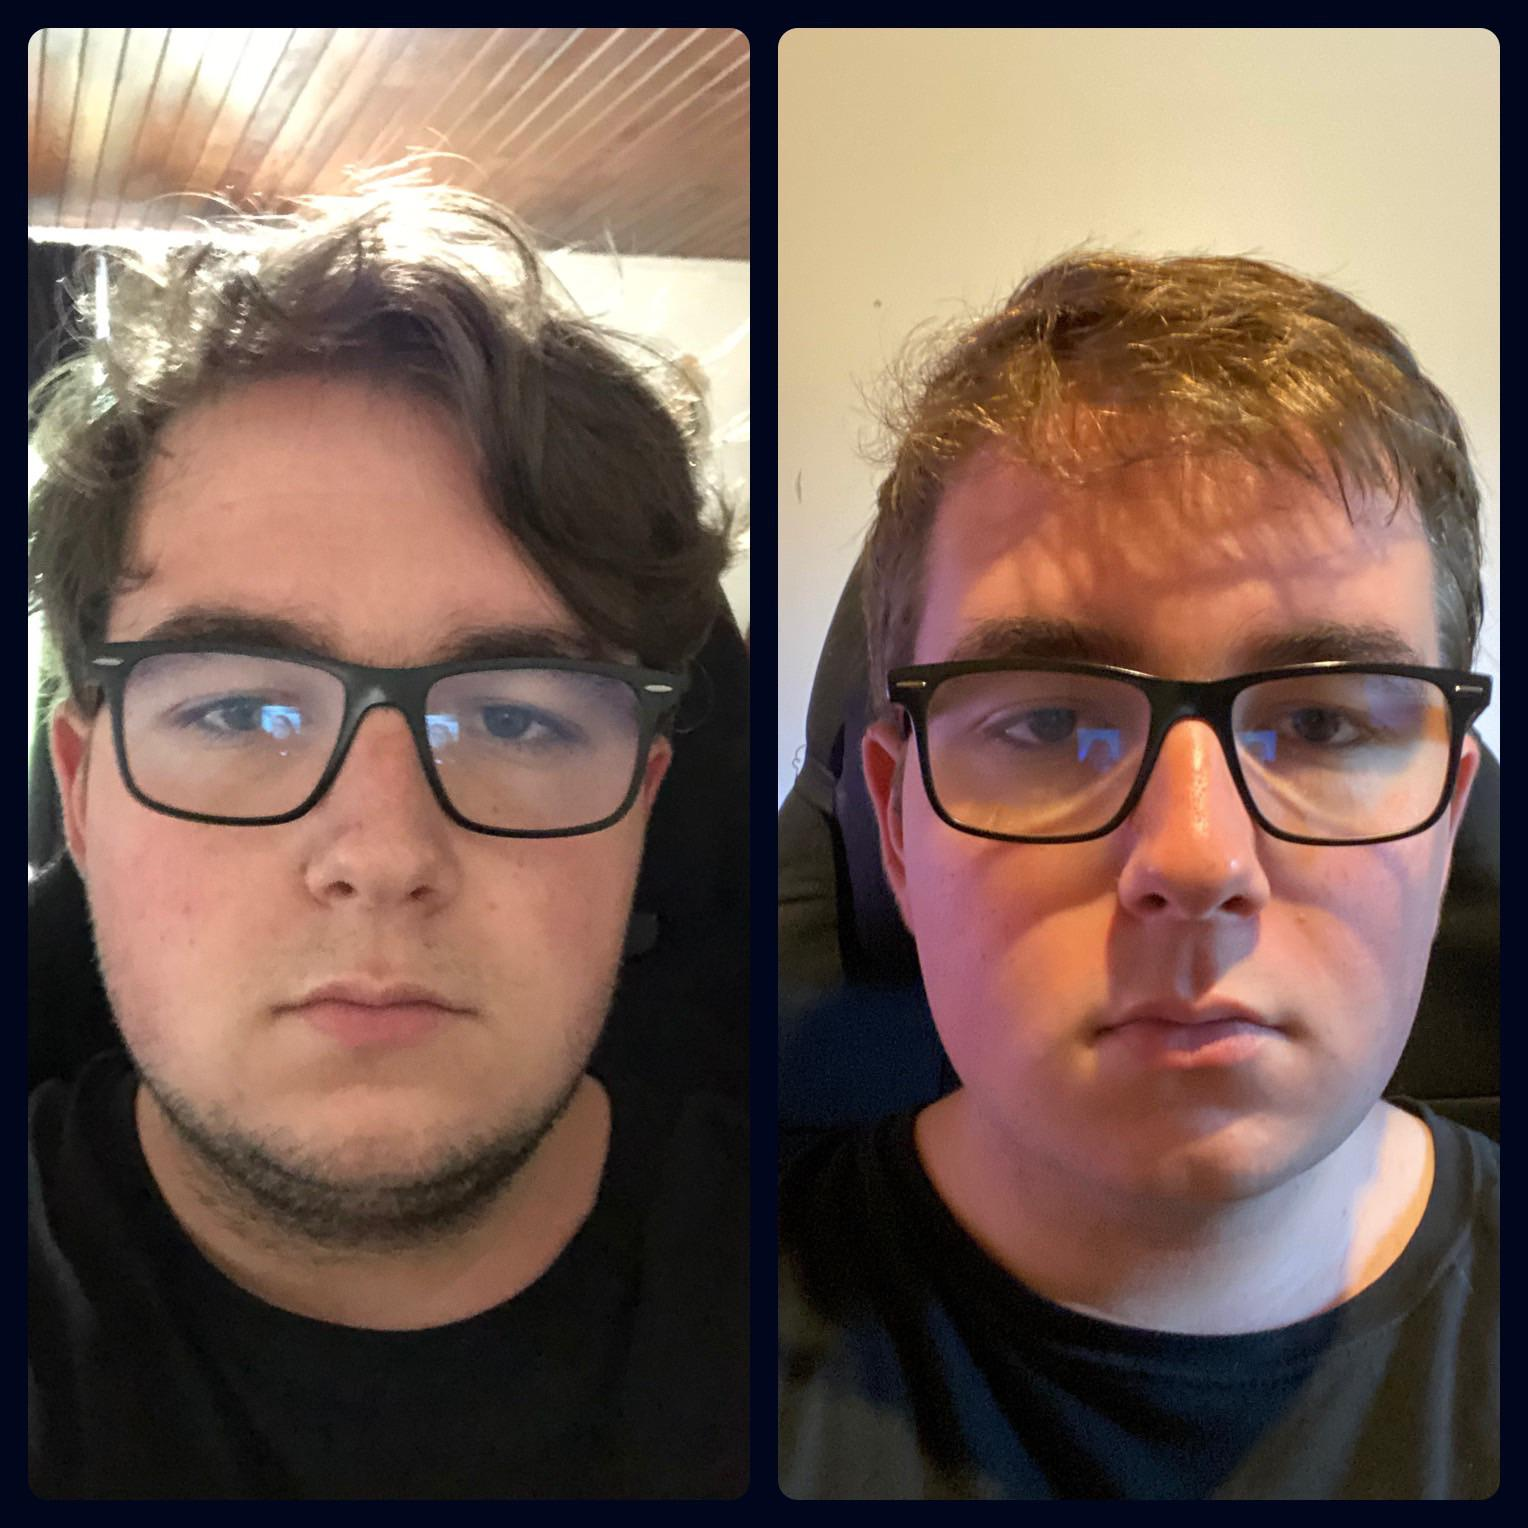 5 feet 7 Male 33 lbs Fat Loss Before and After 265 lbs to 232 lbs